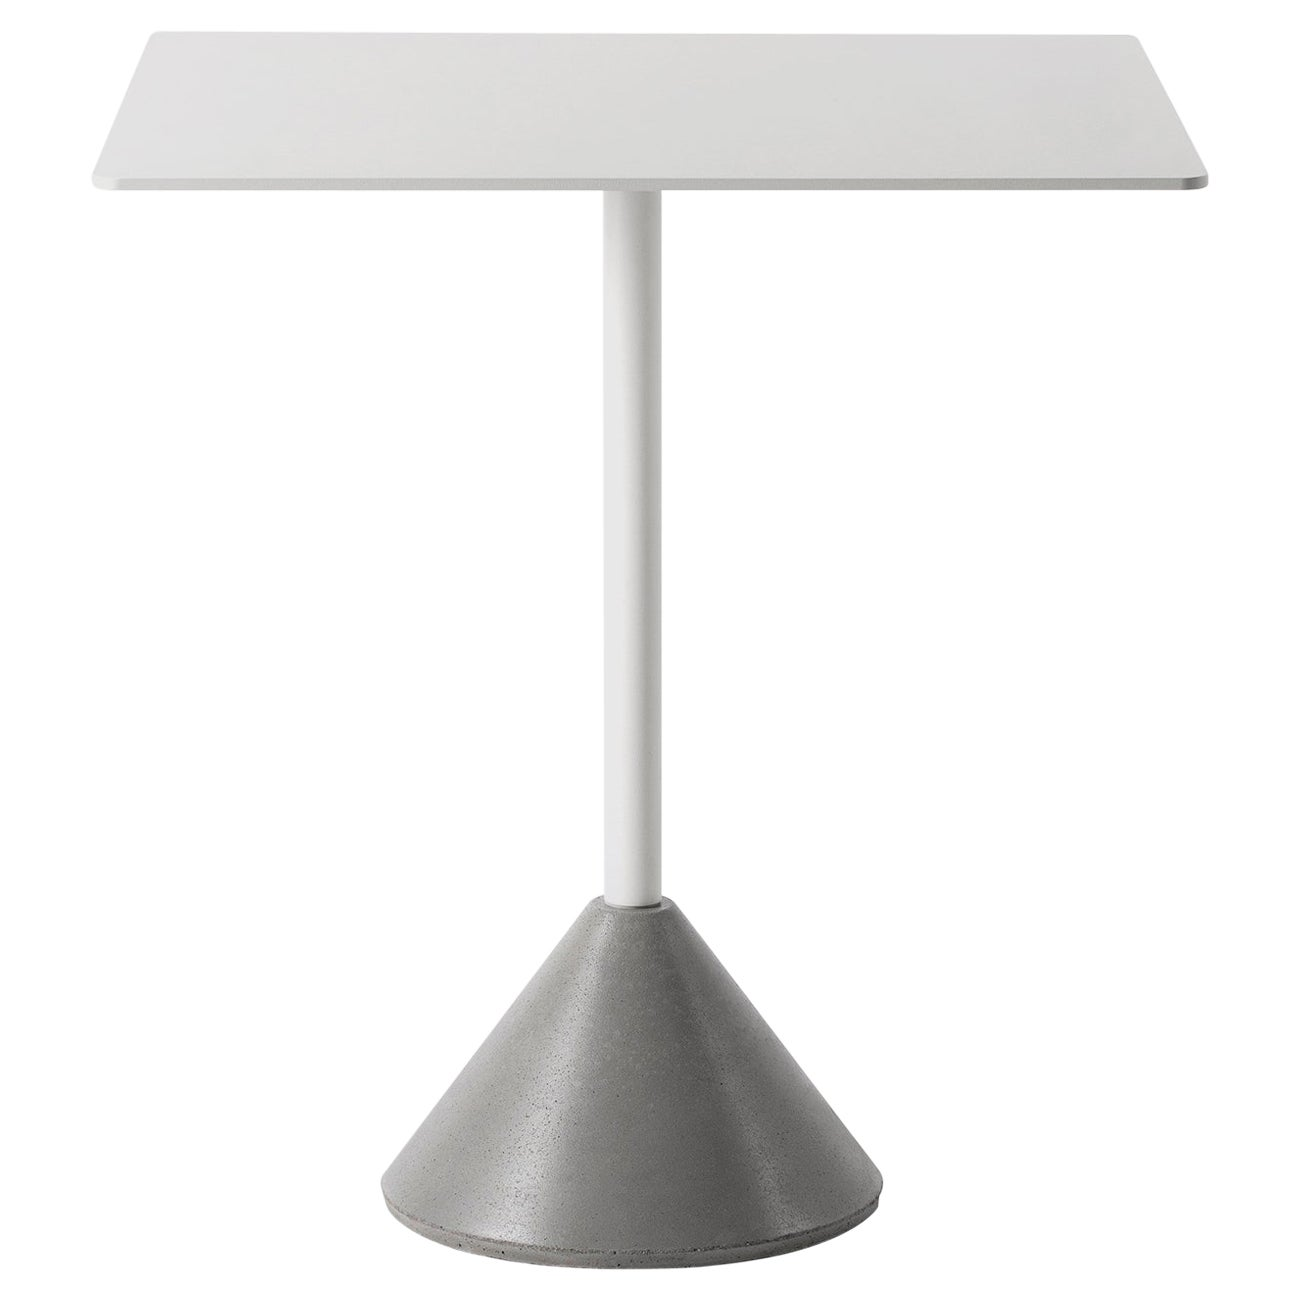 Square Dining Table 'DING' Made of Concrete and Aluminum 'White'